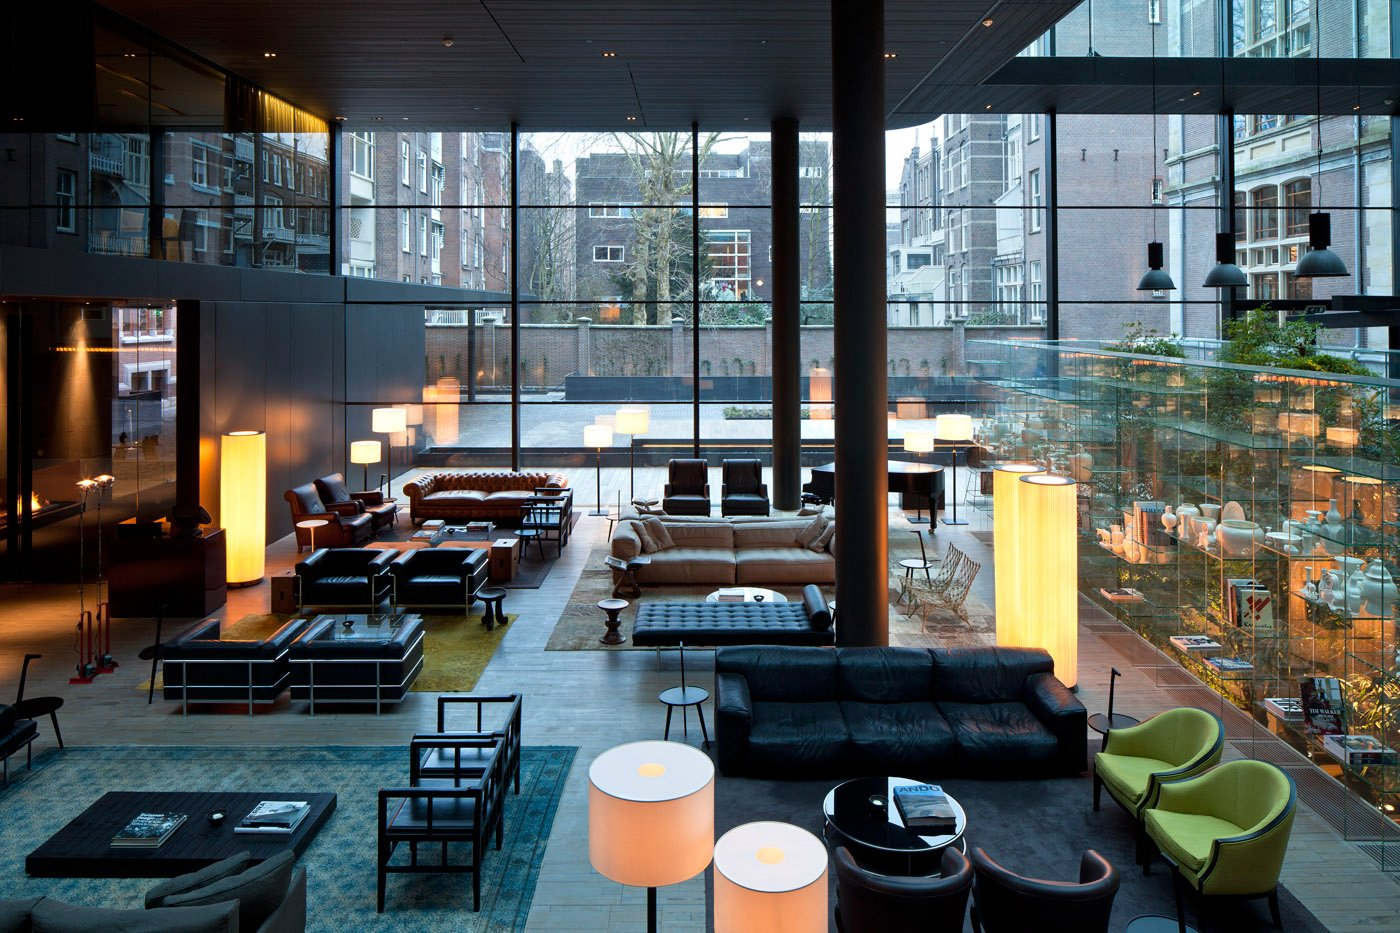 The Conservatorium is outfitted with furniture by Cassina, Kartell, and Living Divani.  Places to go by Lara Deam from The Conservatorium, Amsterdam